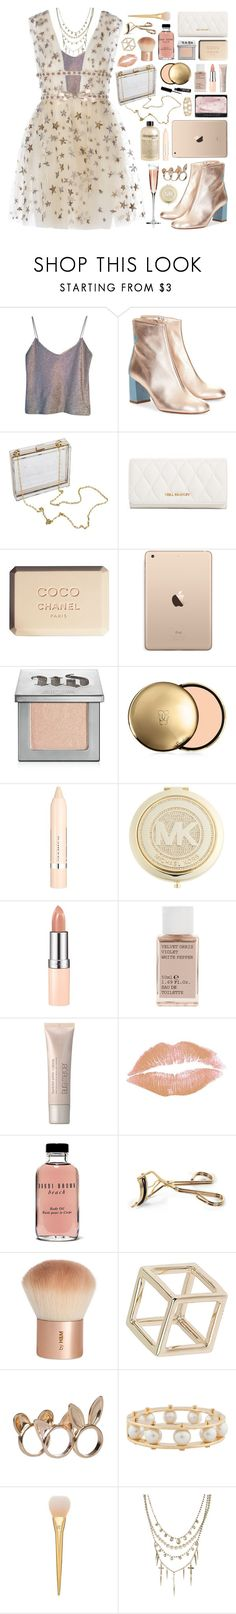 """//rose gold//"" by bananafrog ❤ liked on Polyvore featuring Narciso Rodriguez, Camilla Elphick, Vera Bradley, Chanel, Urban Decay, Guerlain, L'Oréal Paris, MICHAEL Michael Kors, Rimmel and Korres"